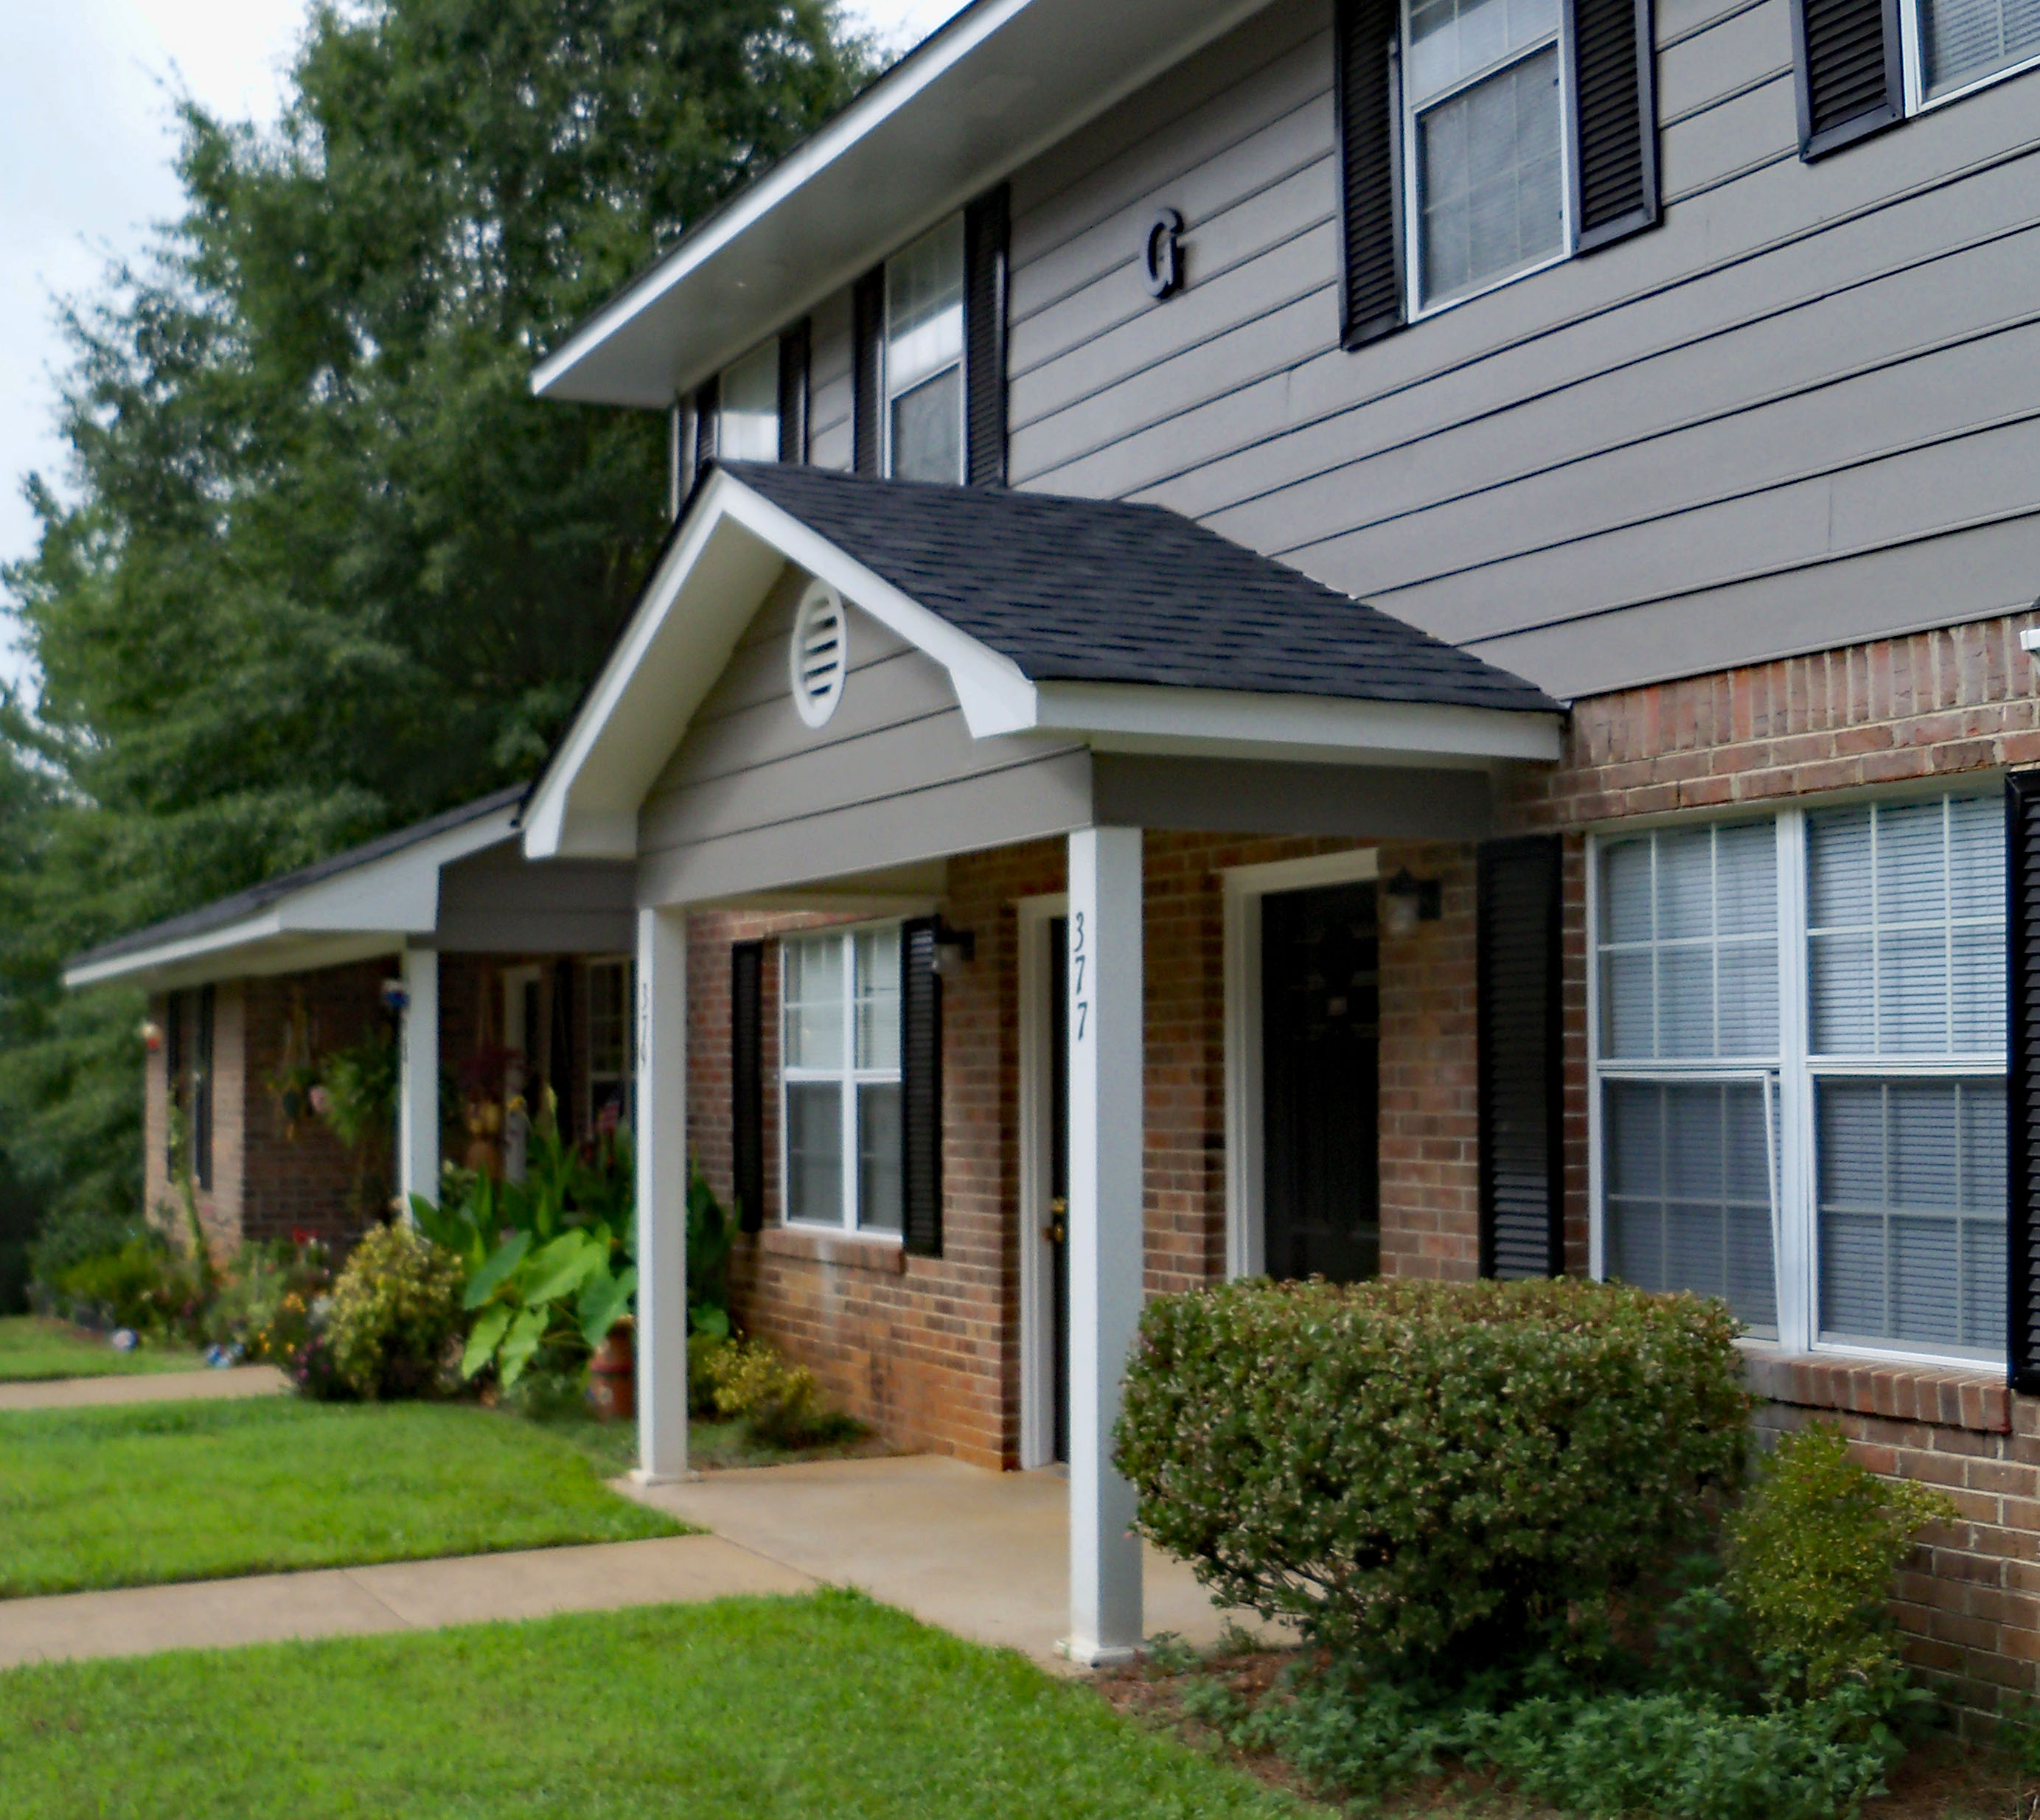 Apartments Utilities Included Low Income: Canton GA Multi-Family Housing Rental